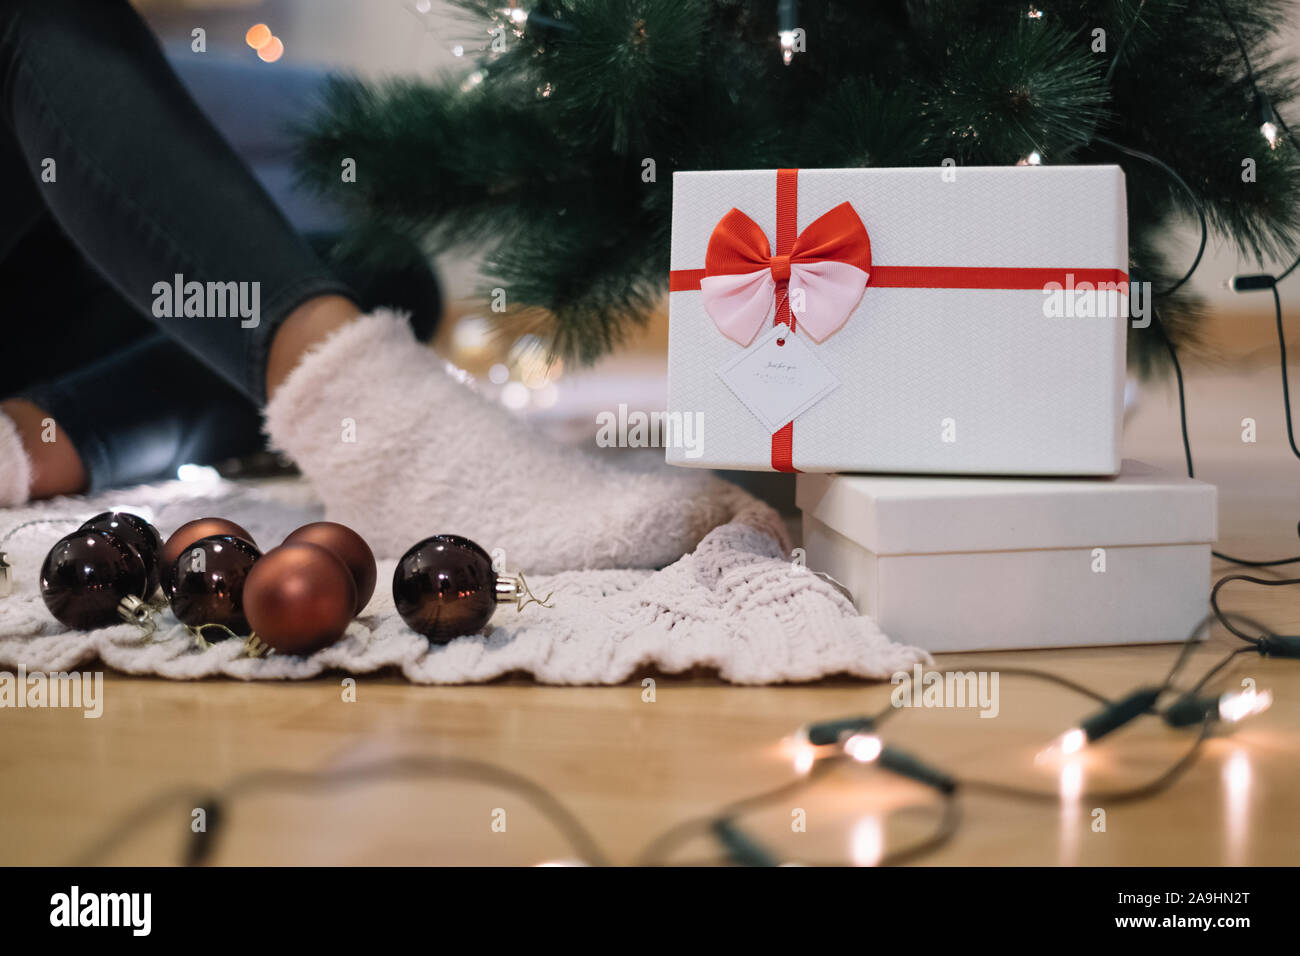 Christmas ornaments and lights with gift boxes Stock Photo